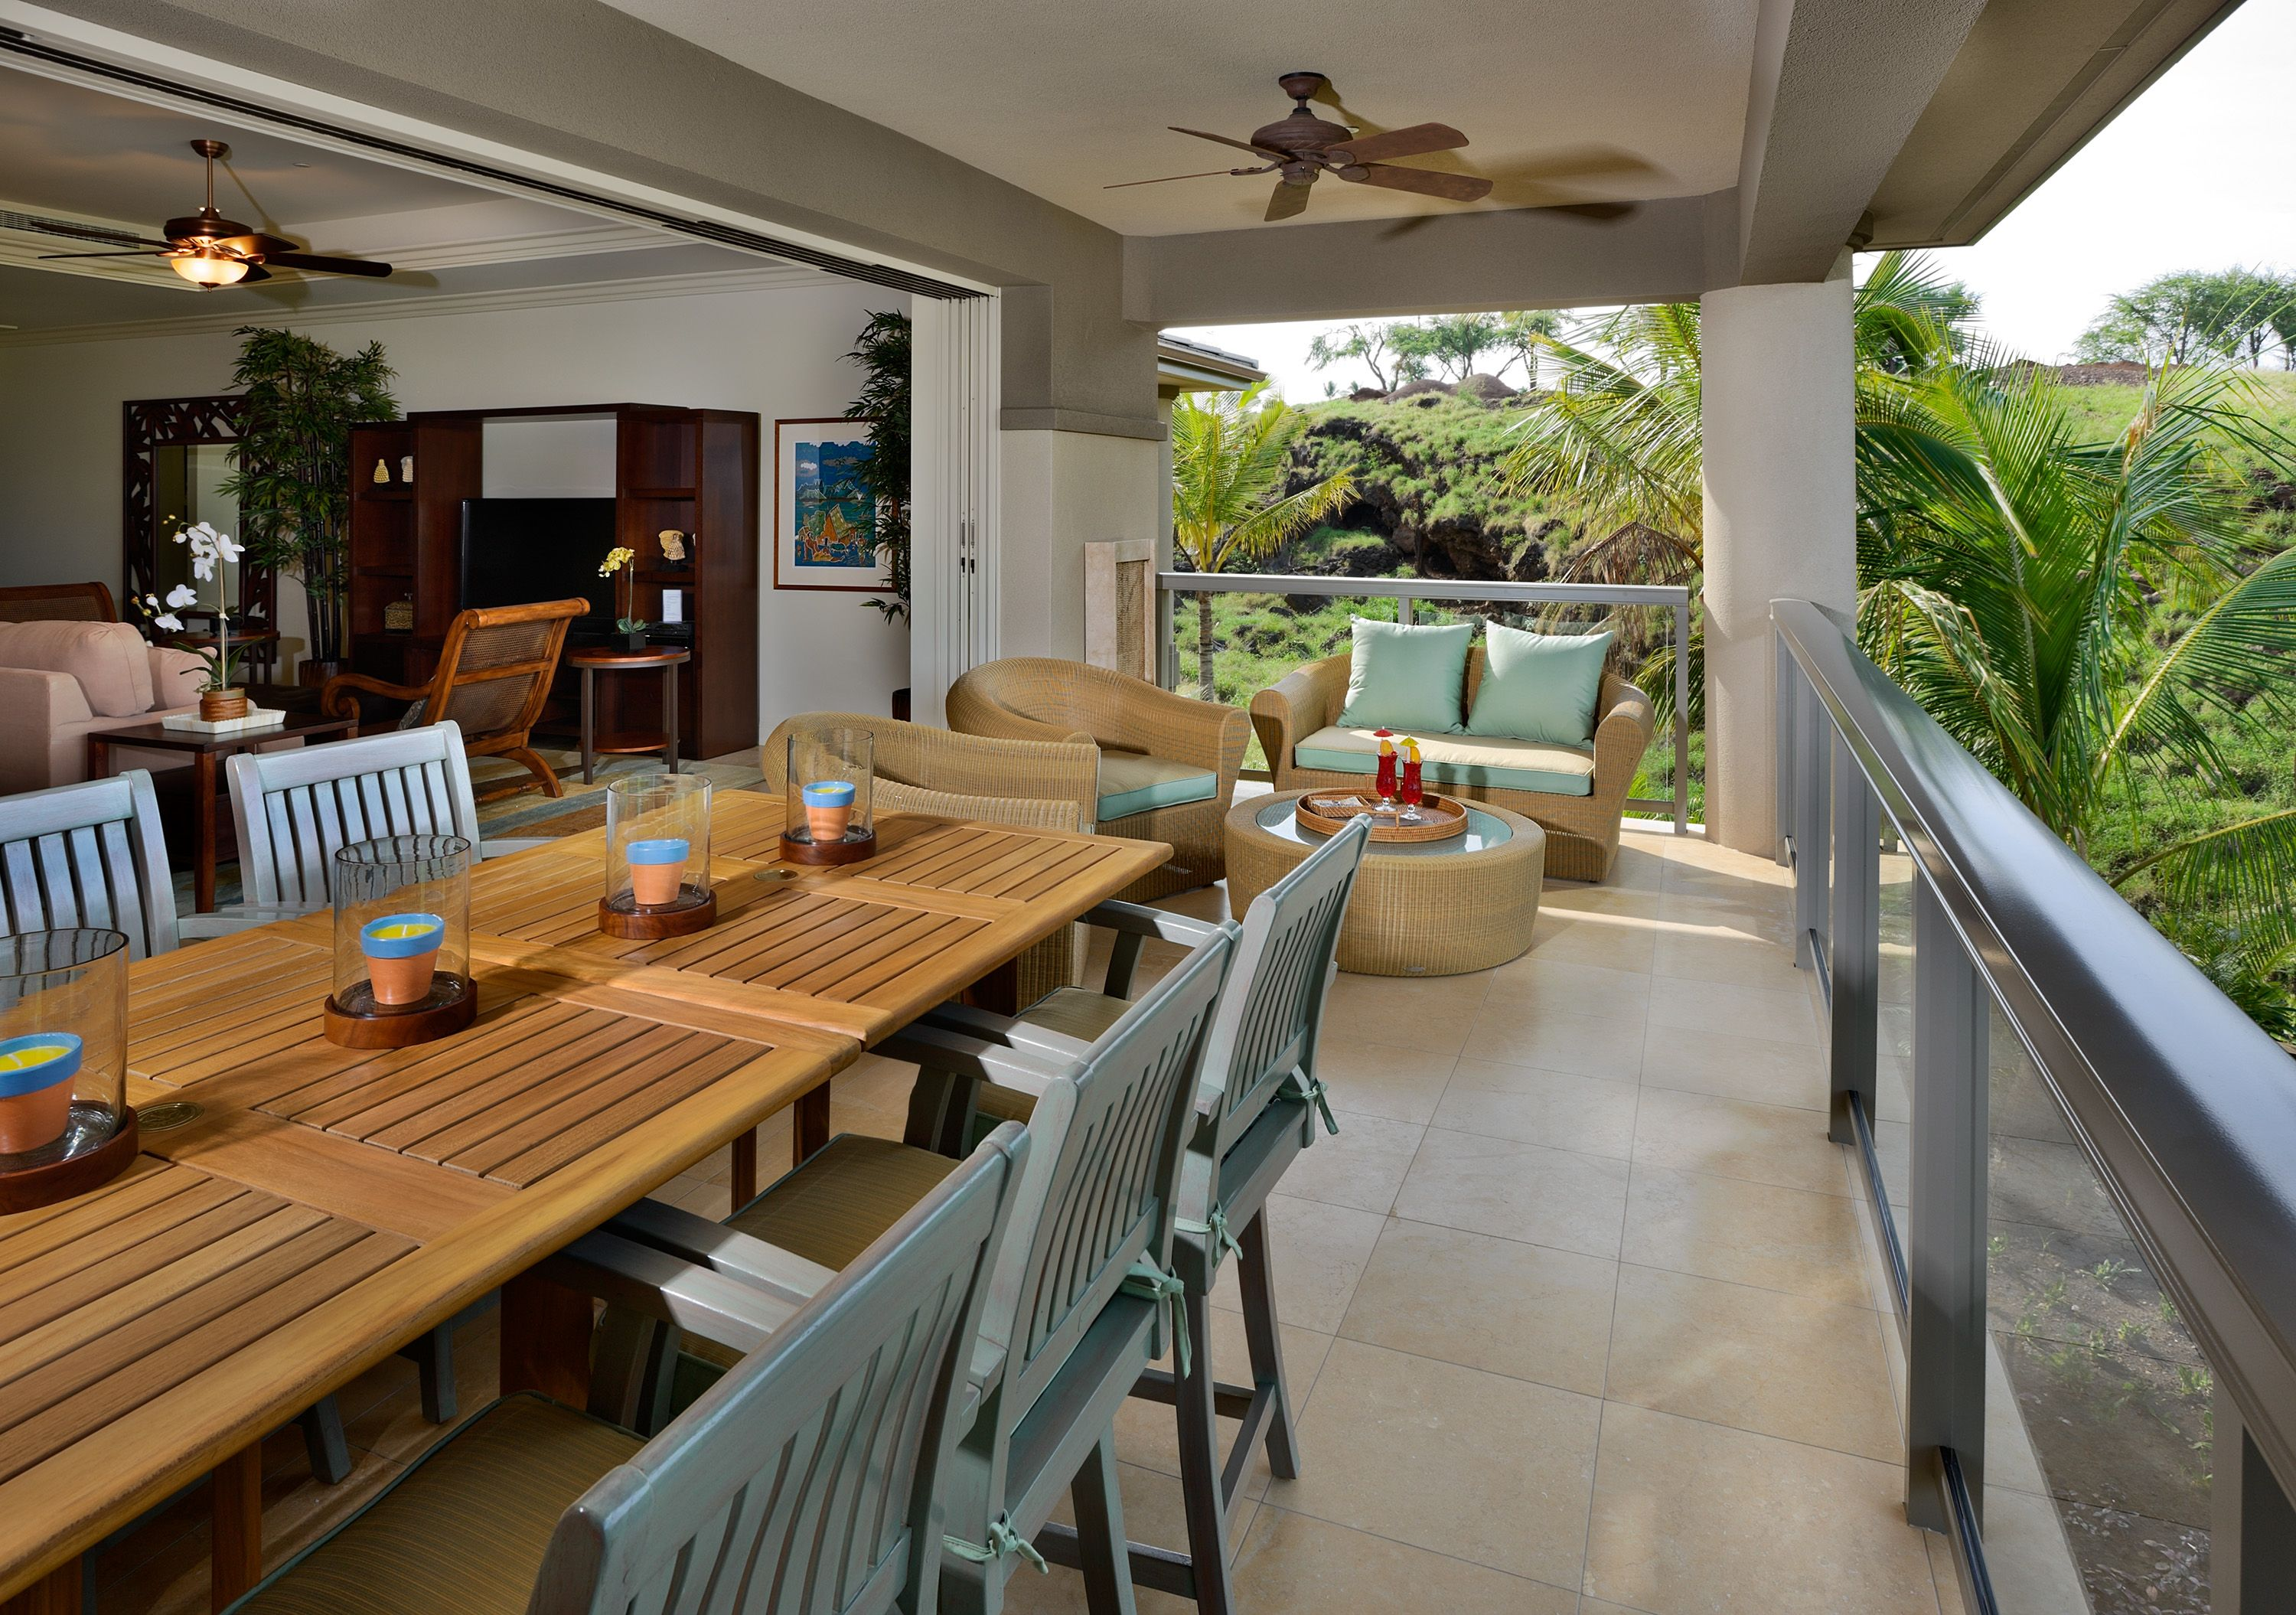 Relaxing Outdoor Lanai Dining Maui Hawaii Lanai Decorating Home Deco House Design